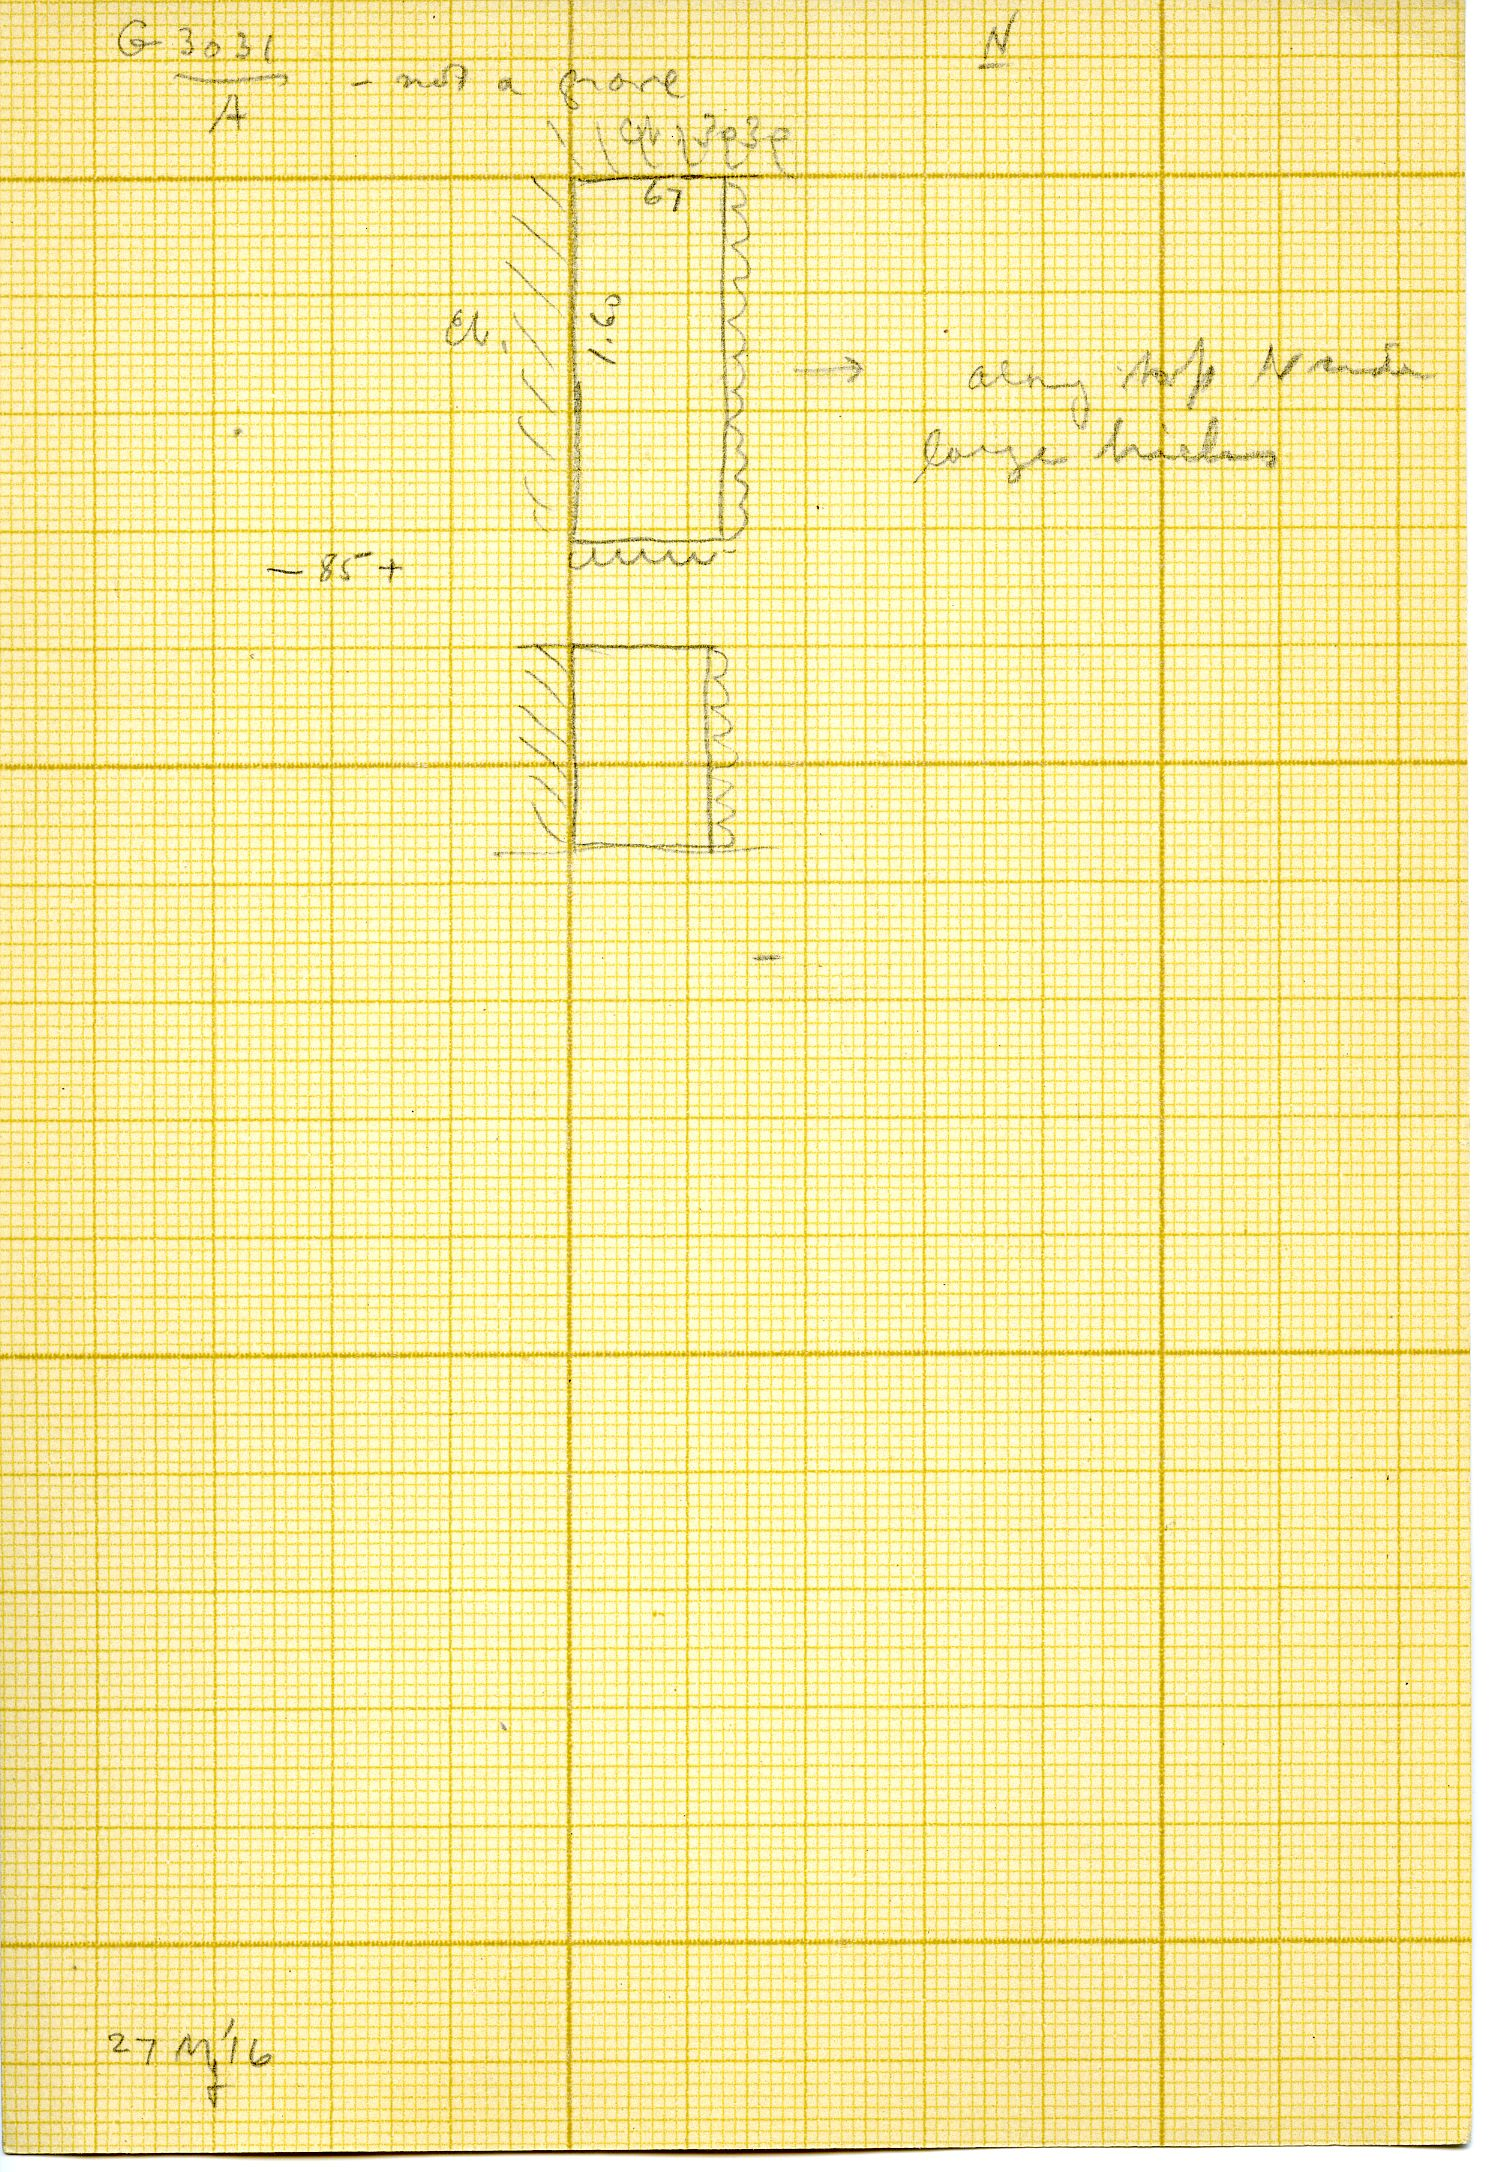 Maps and plans: G 3031, Shaft A